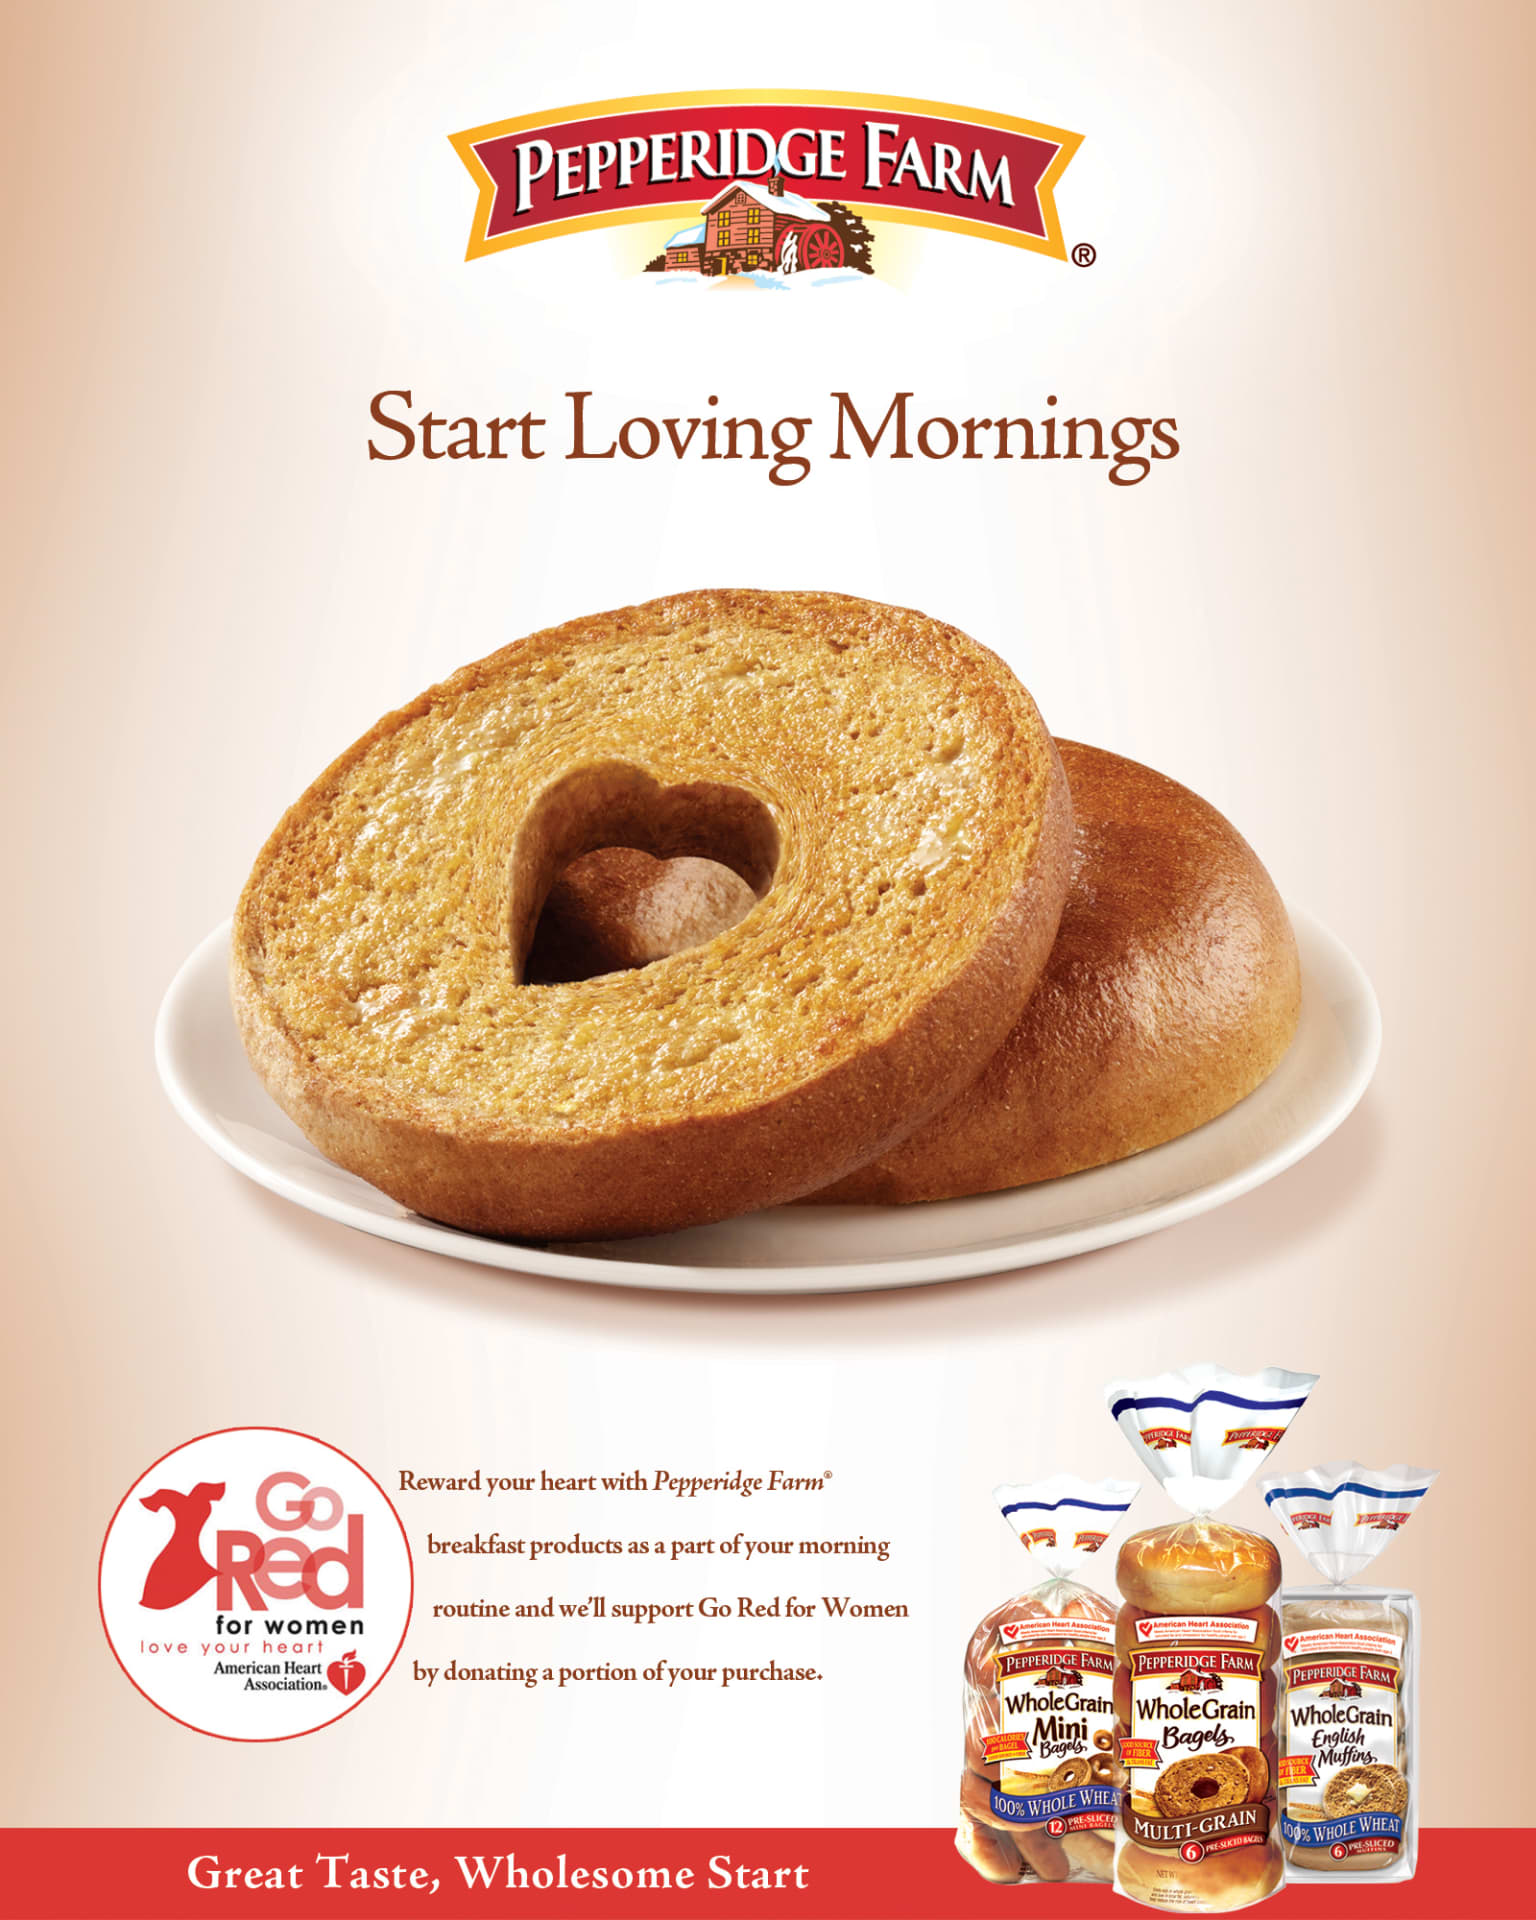 Whole Grain Bagel Launch - Pepperidge Farm